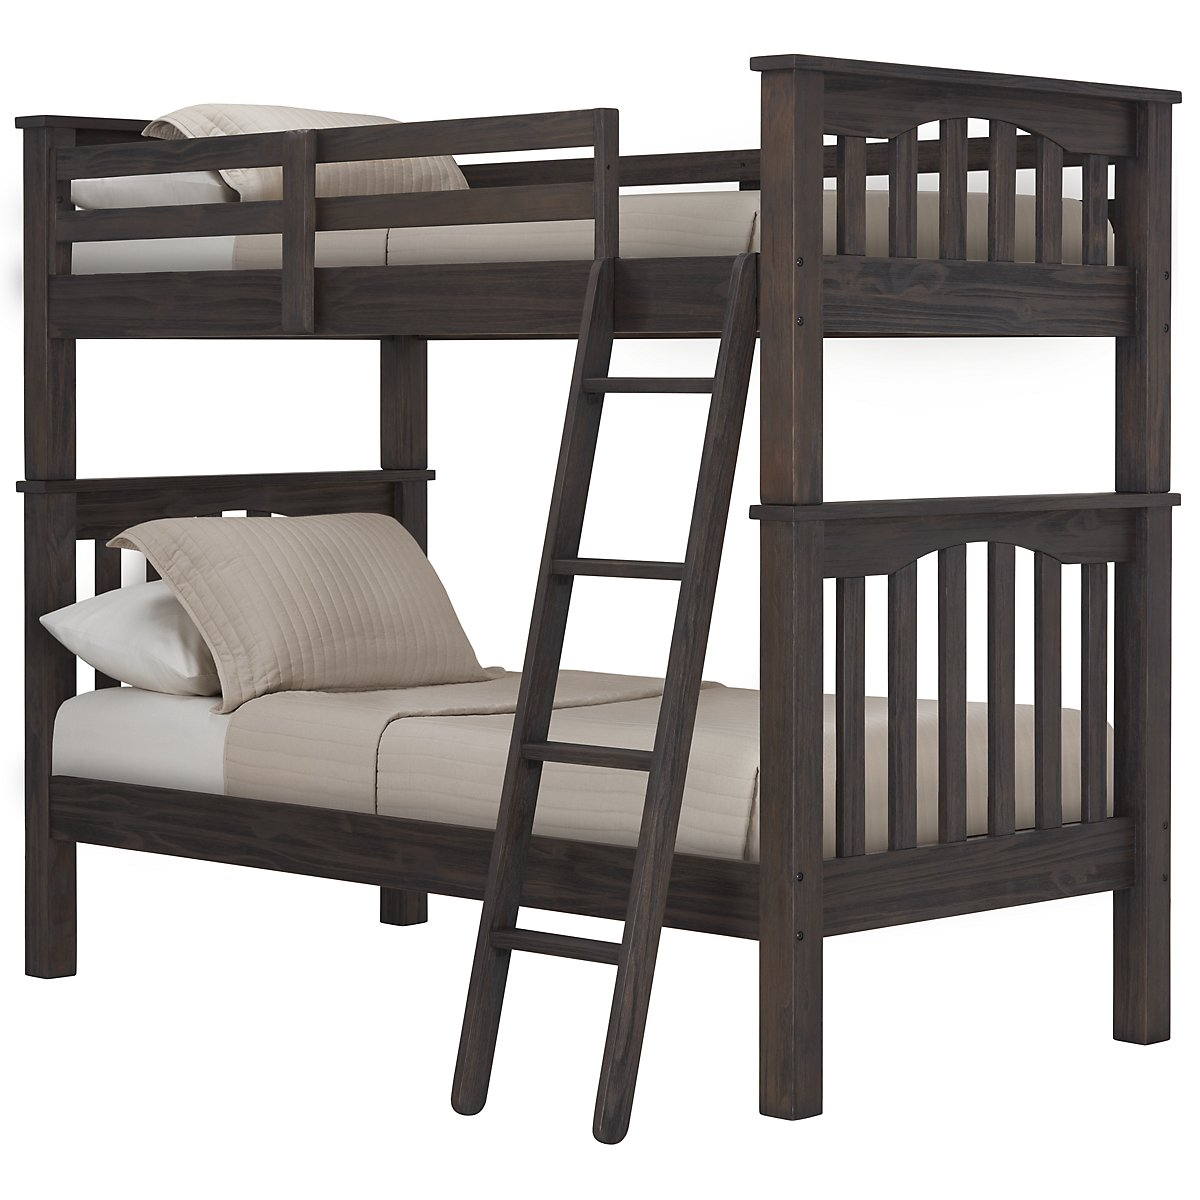 Highlands Dark Tone Bunk Bed